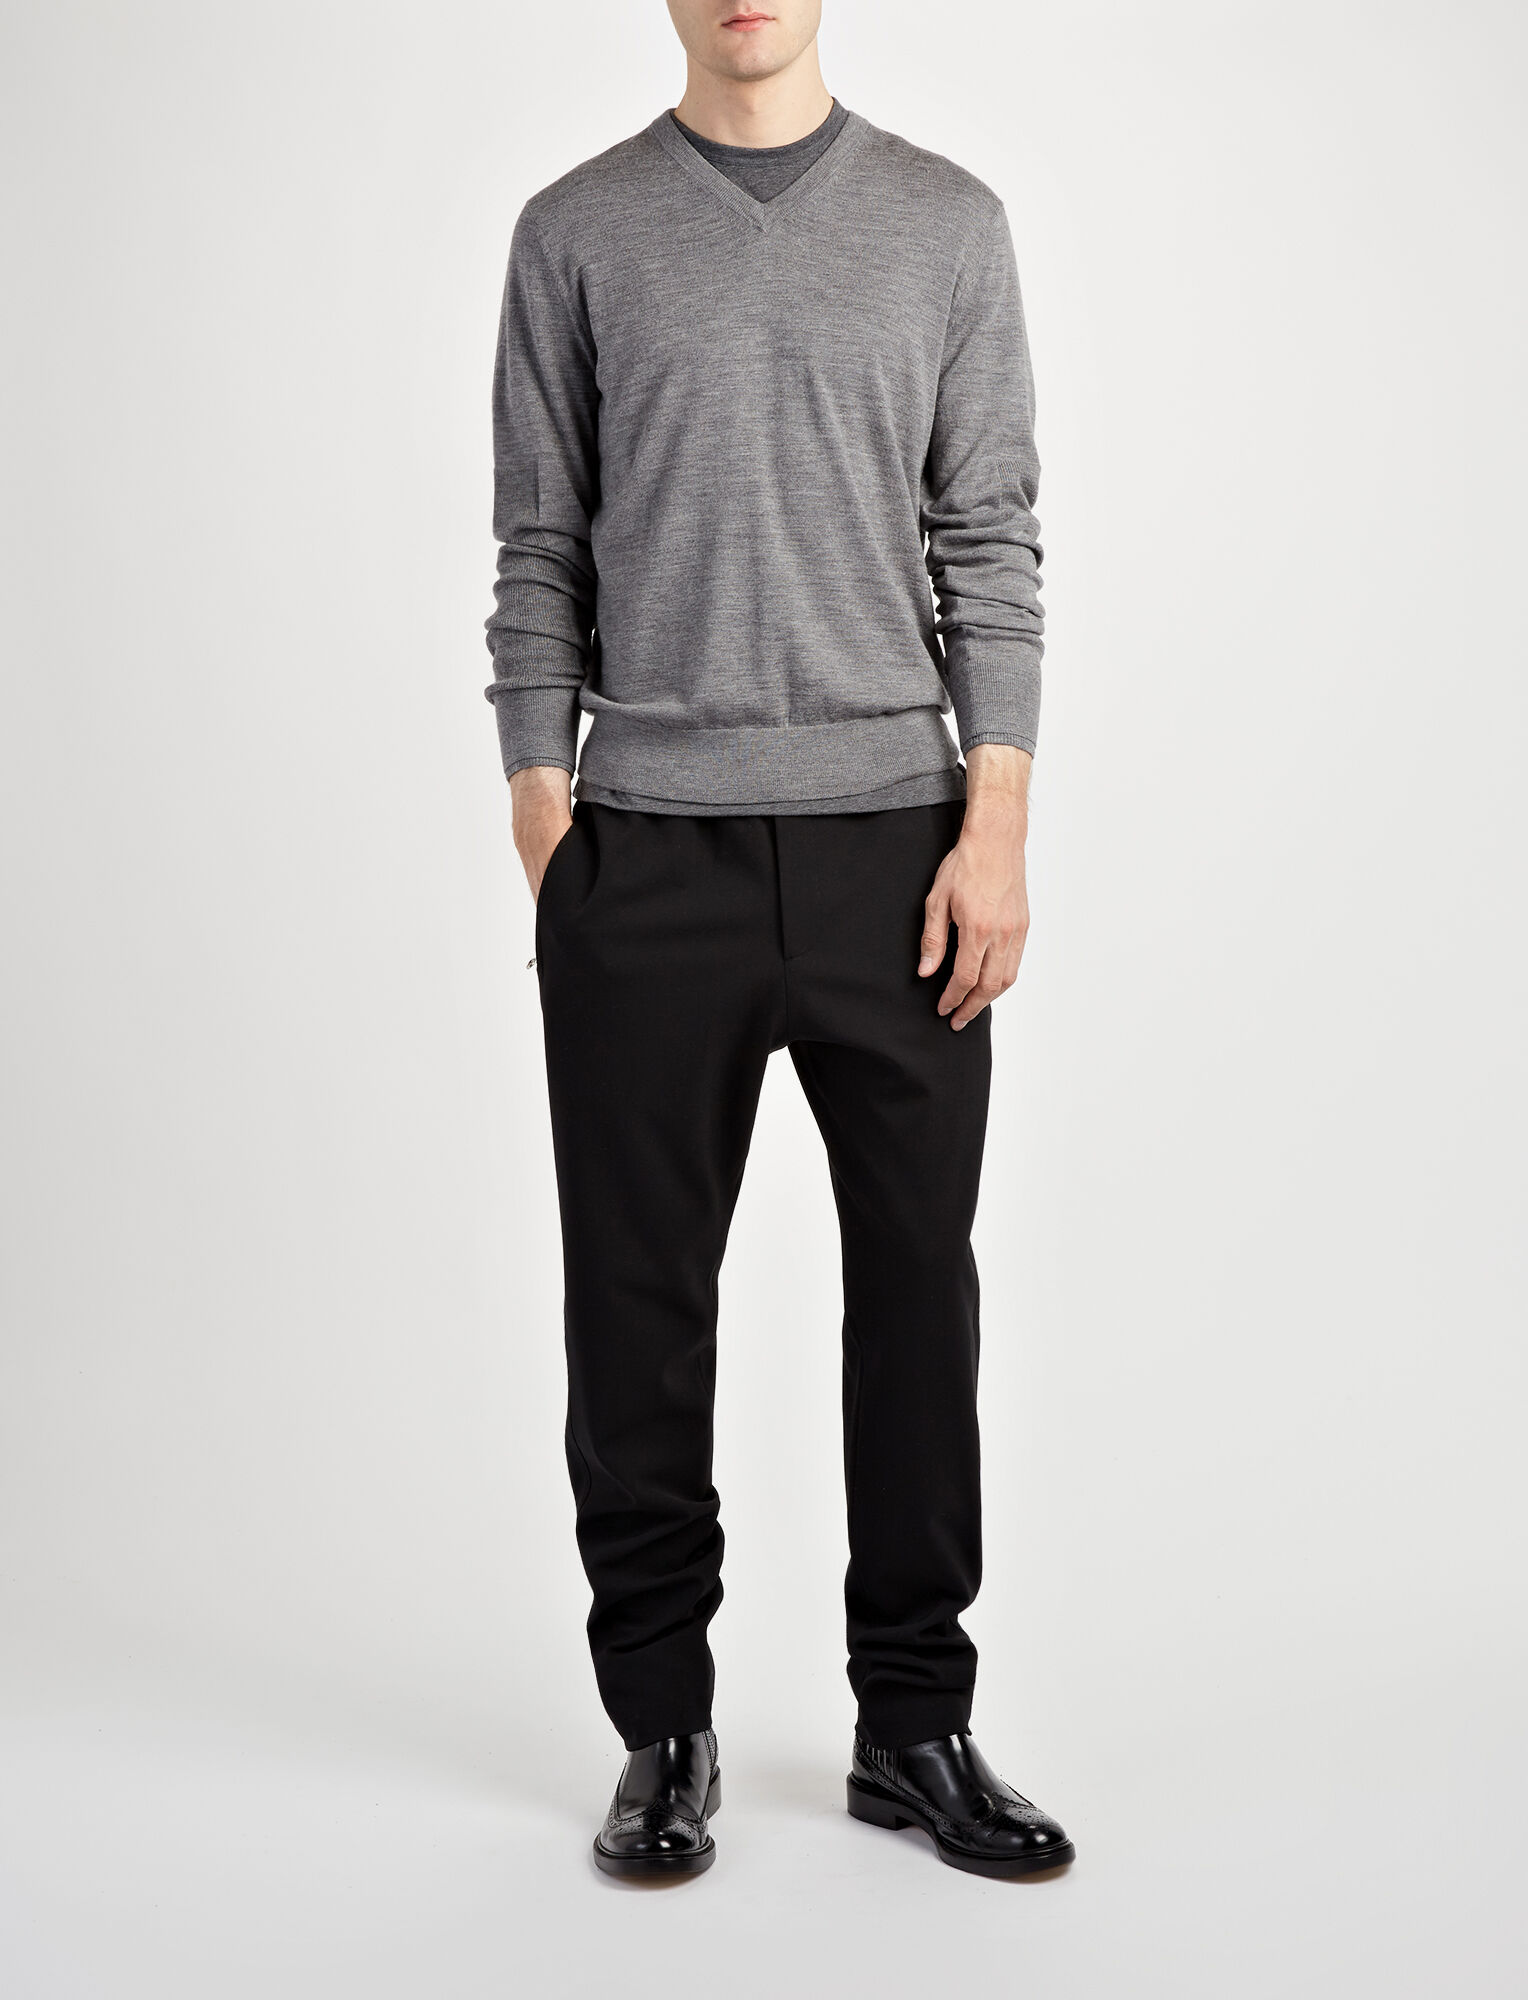 Joseph, Merinos V Neck + Rib Patch Knit, in GRAPHITE